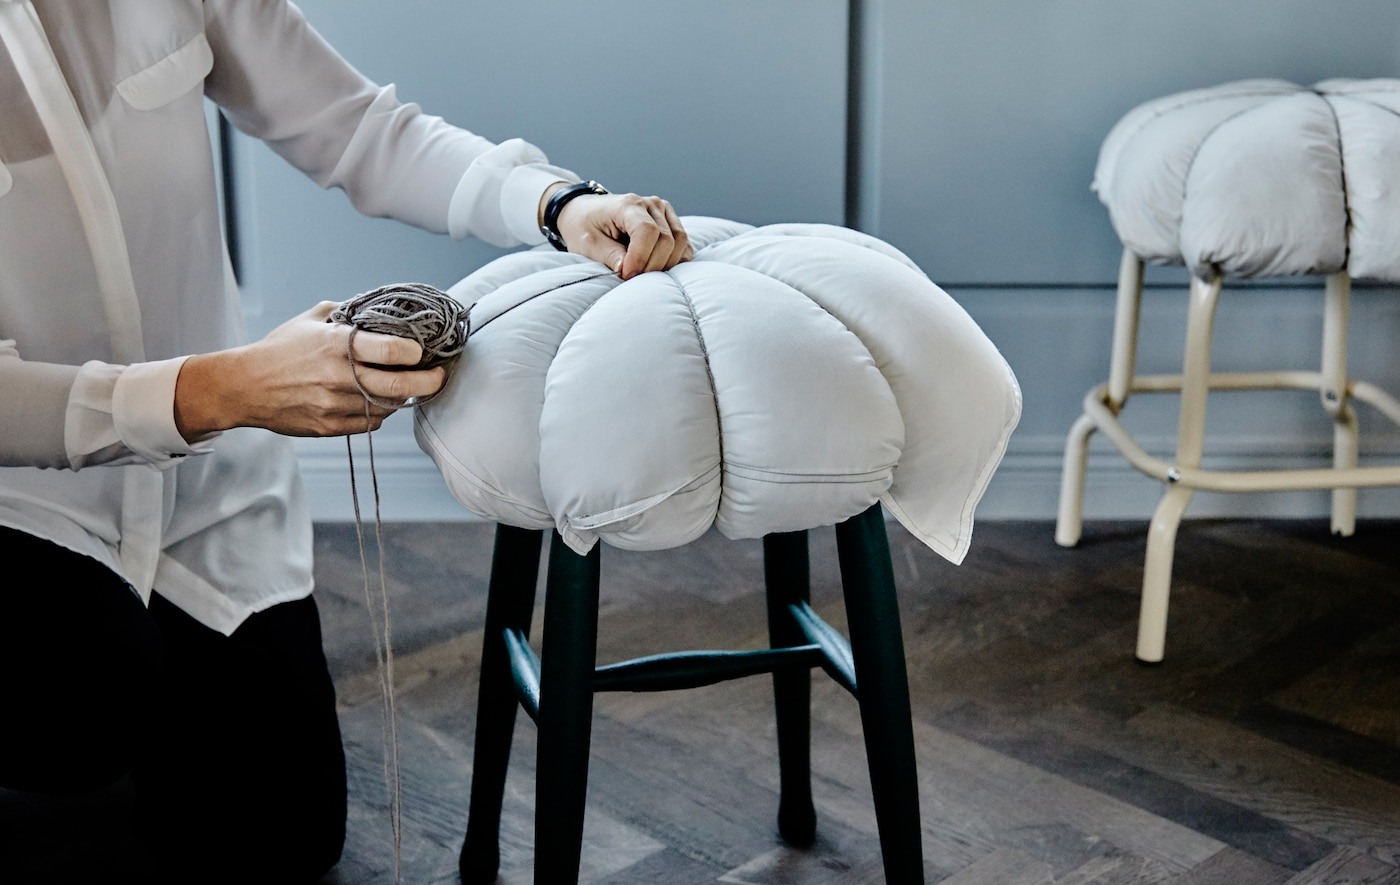 Here's a DIY idea that takes 5 minutes to put together and makes hard seats seriously comfy. All you need is a pillow and a length of string (we like the rustic twine version). Then loop your string over the pillow and stool making 8 equal sections and tie a firm knot at the top. Finished!